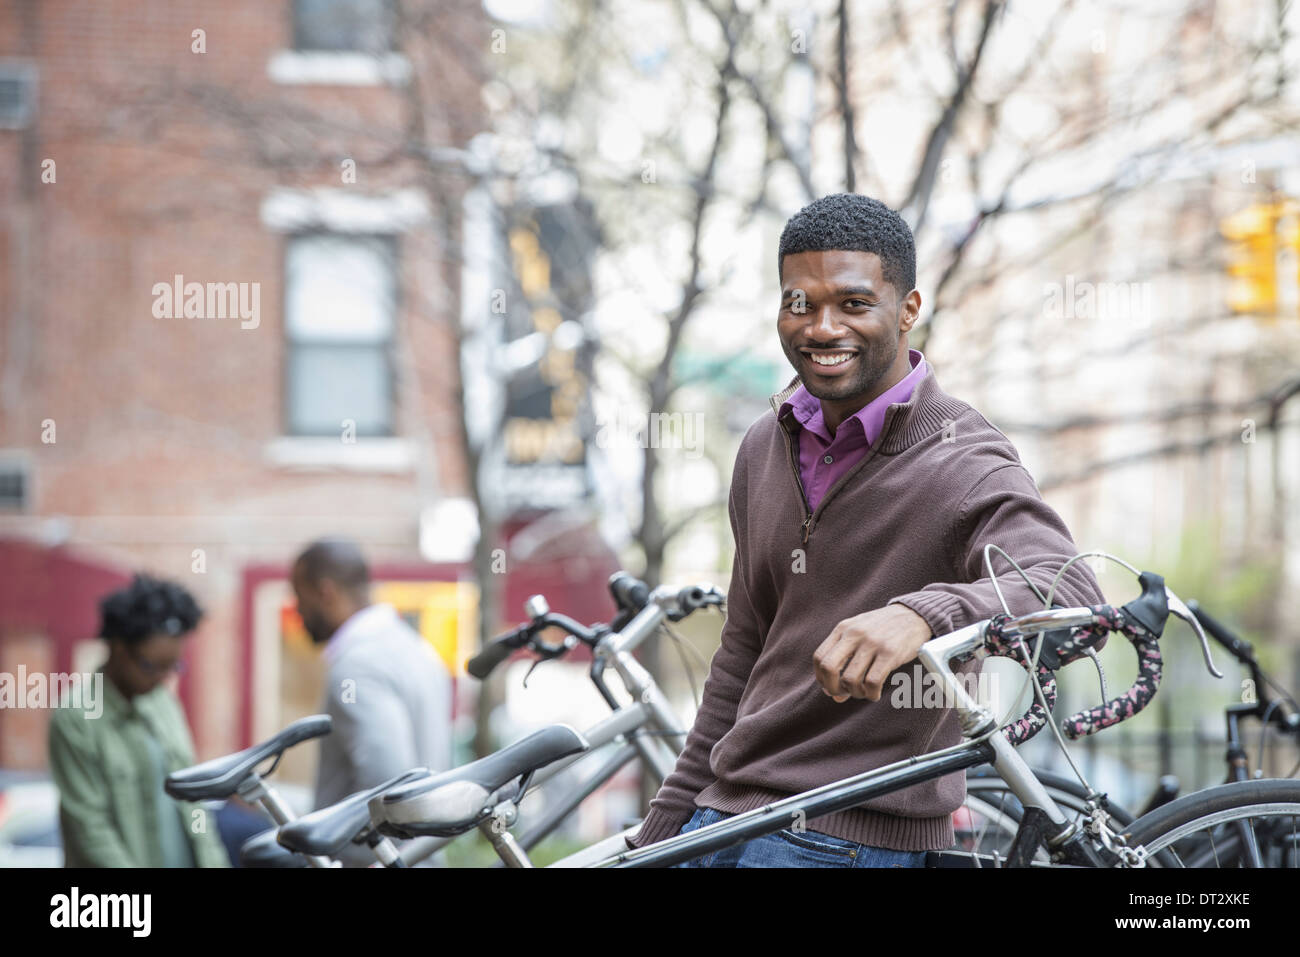 A young man smiling at the camera Bicycle rack - Stock Image